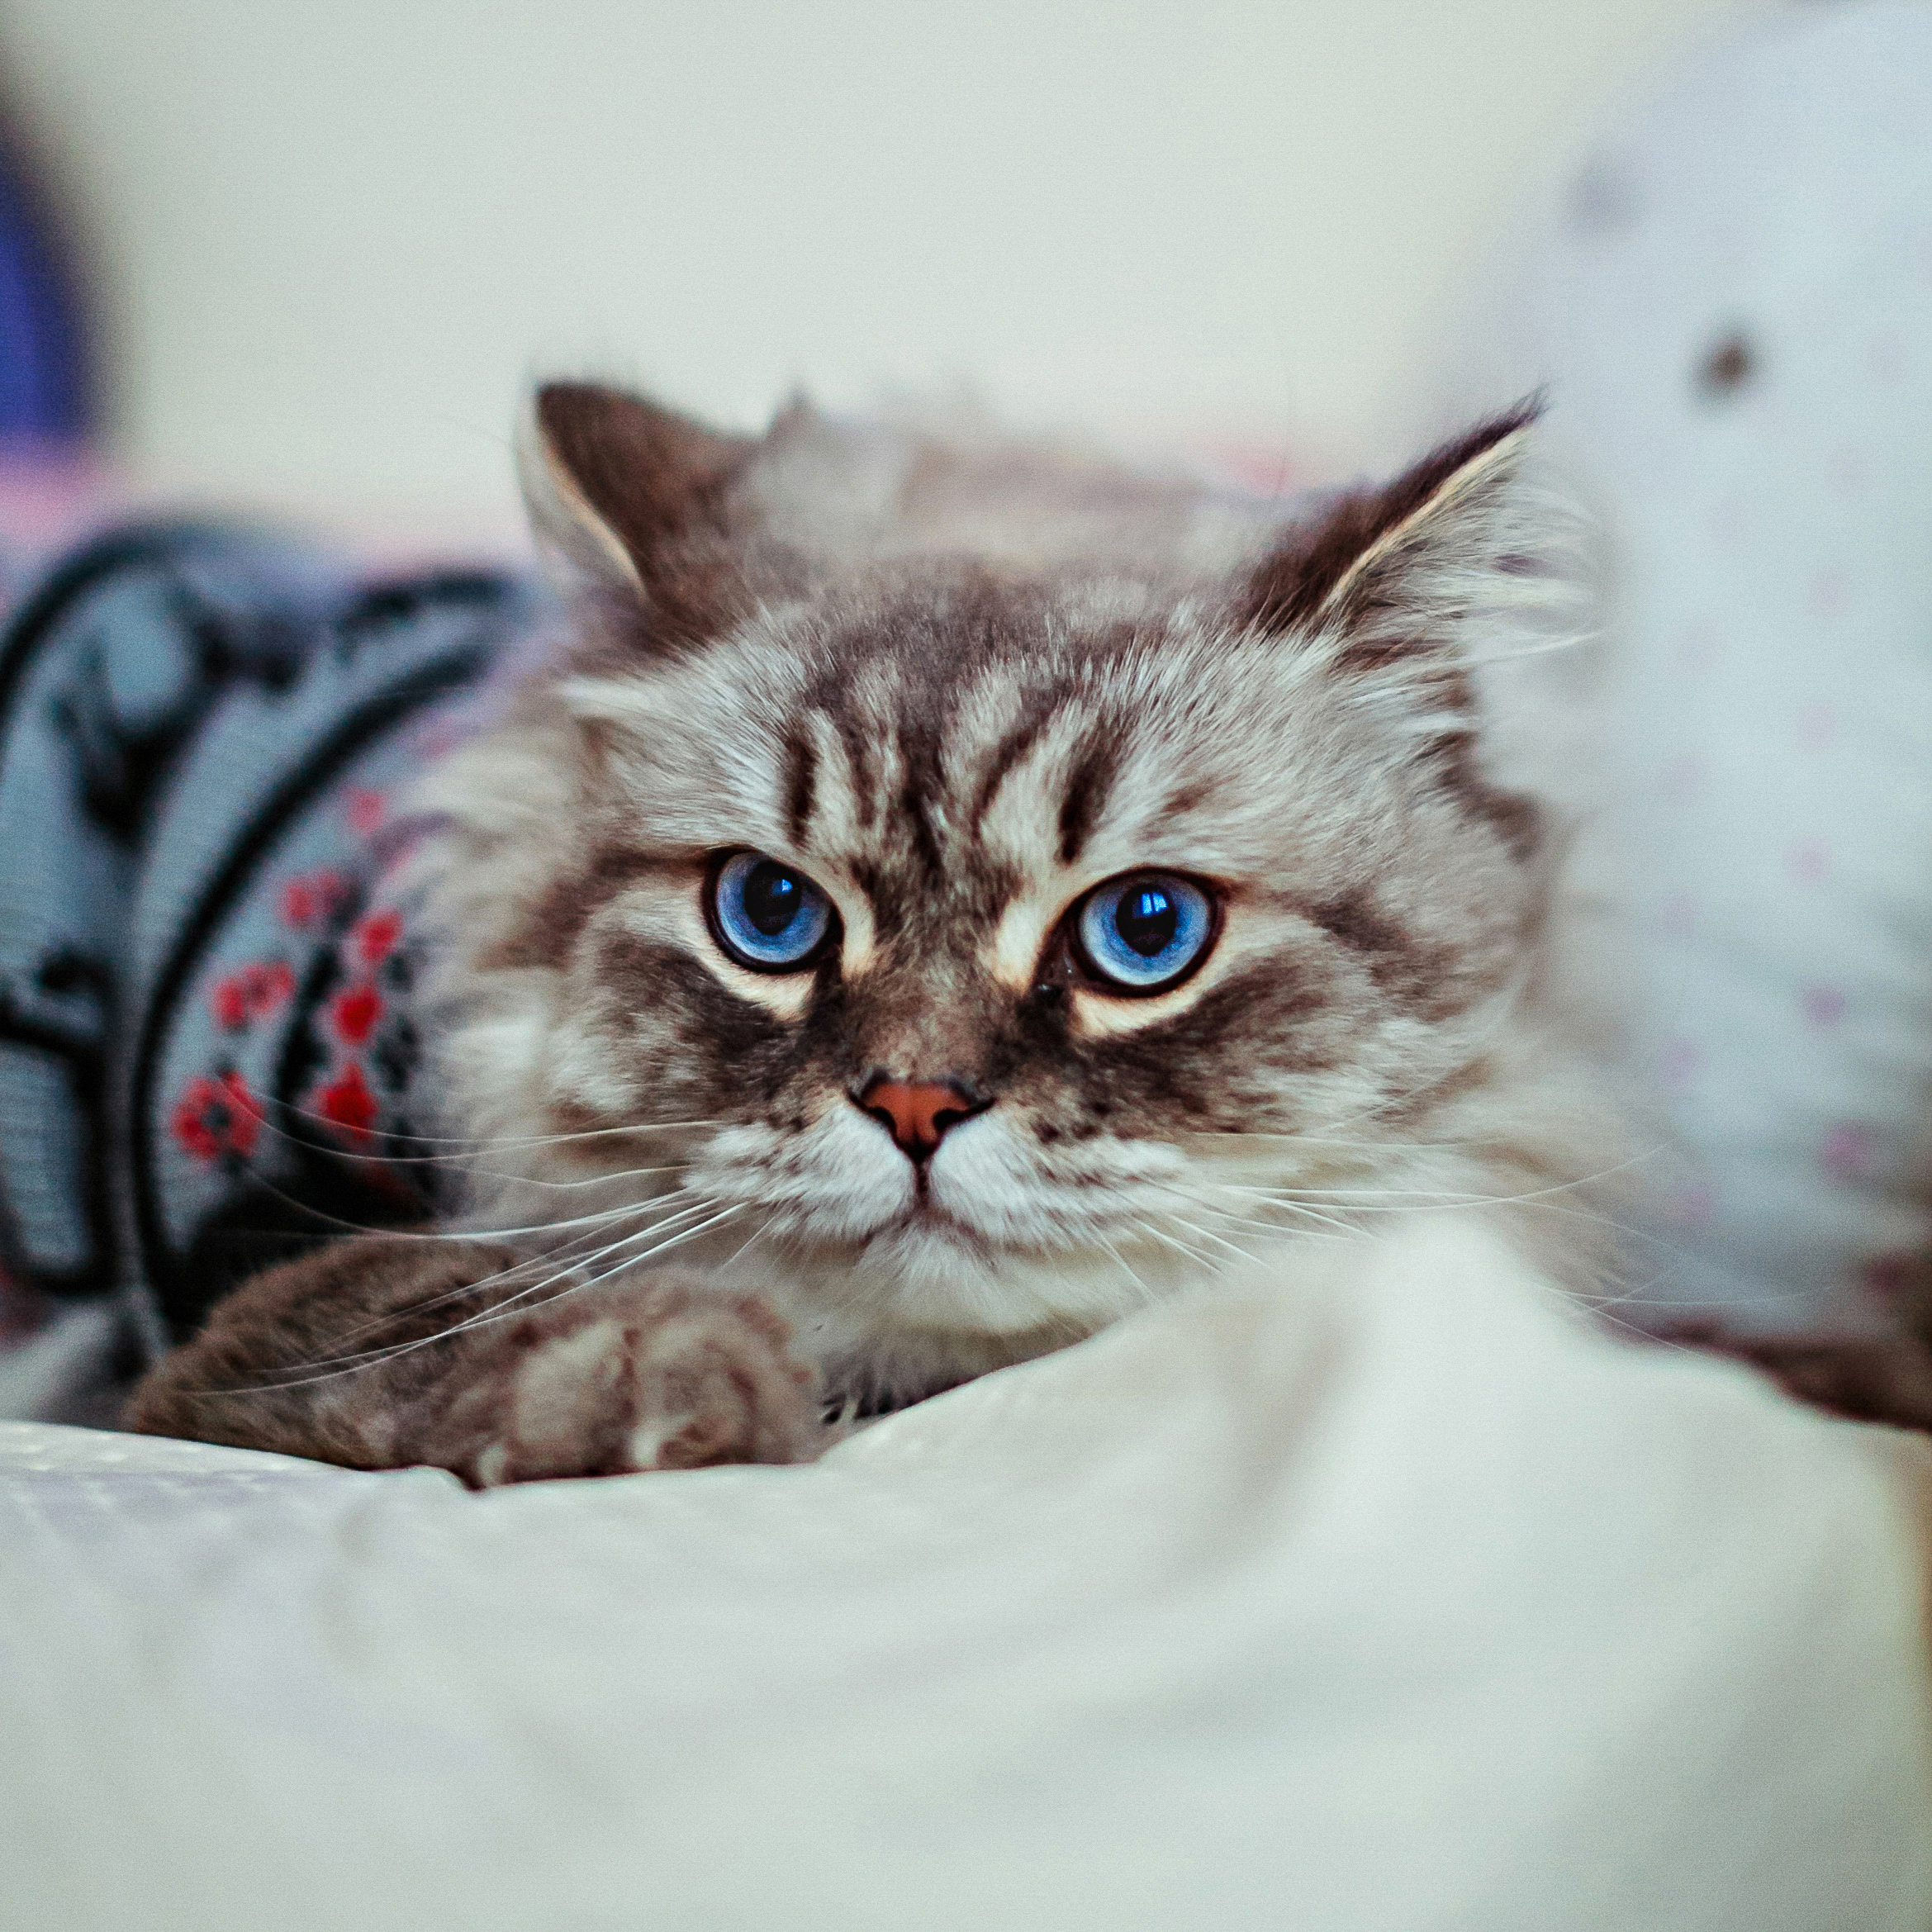 Grey cat in blue sweater lies on white blanket